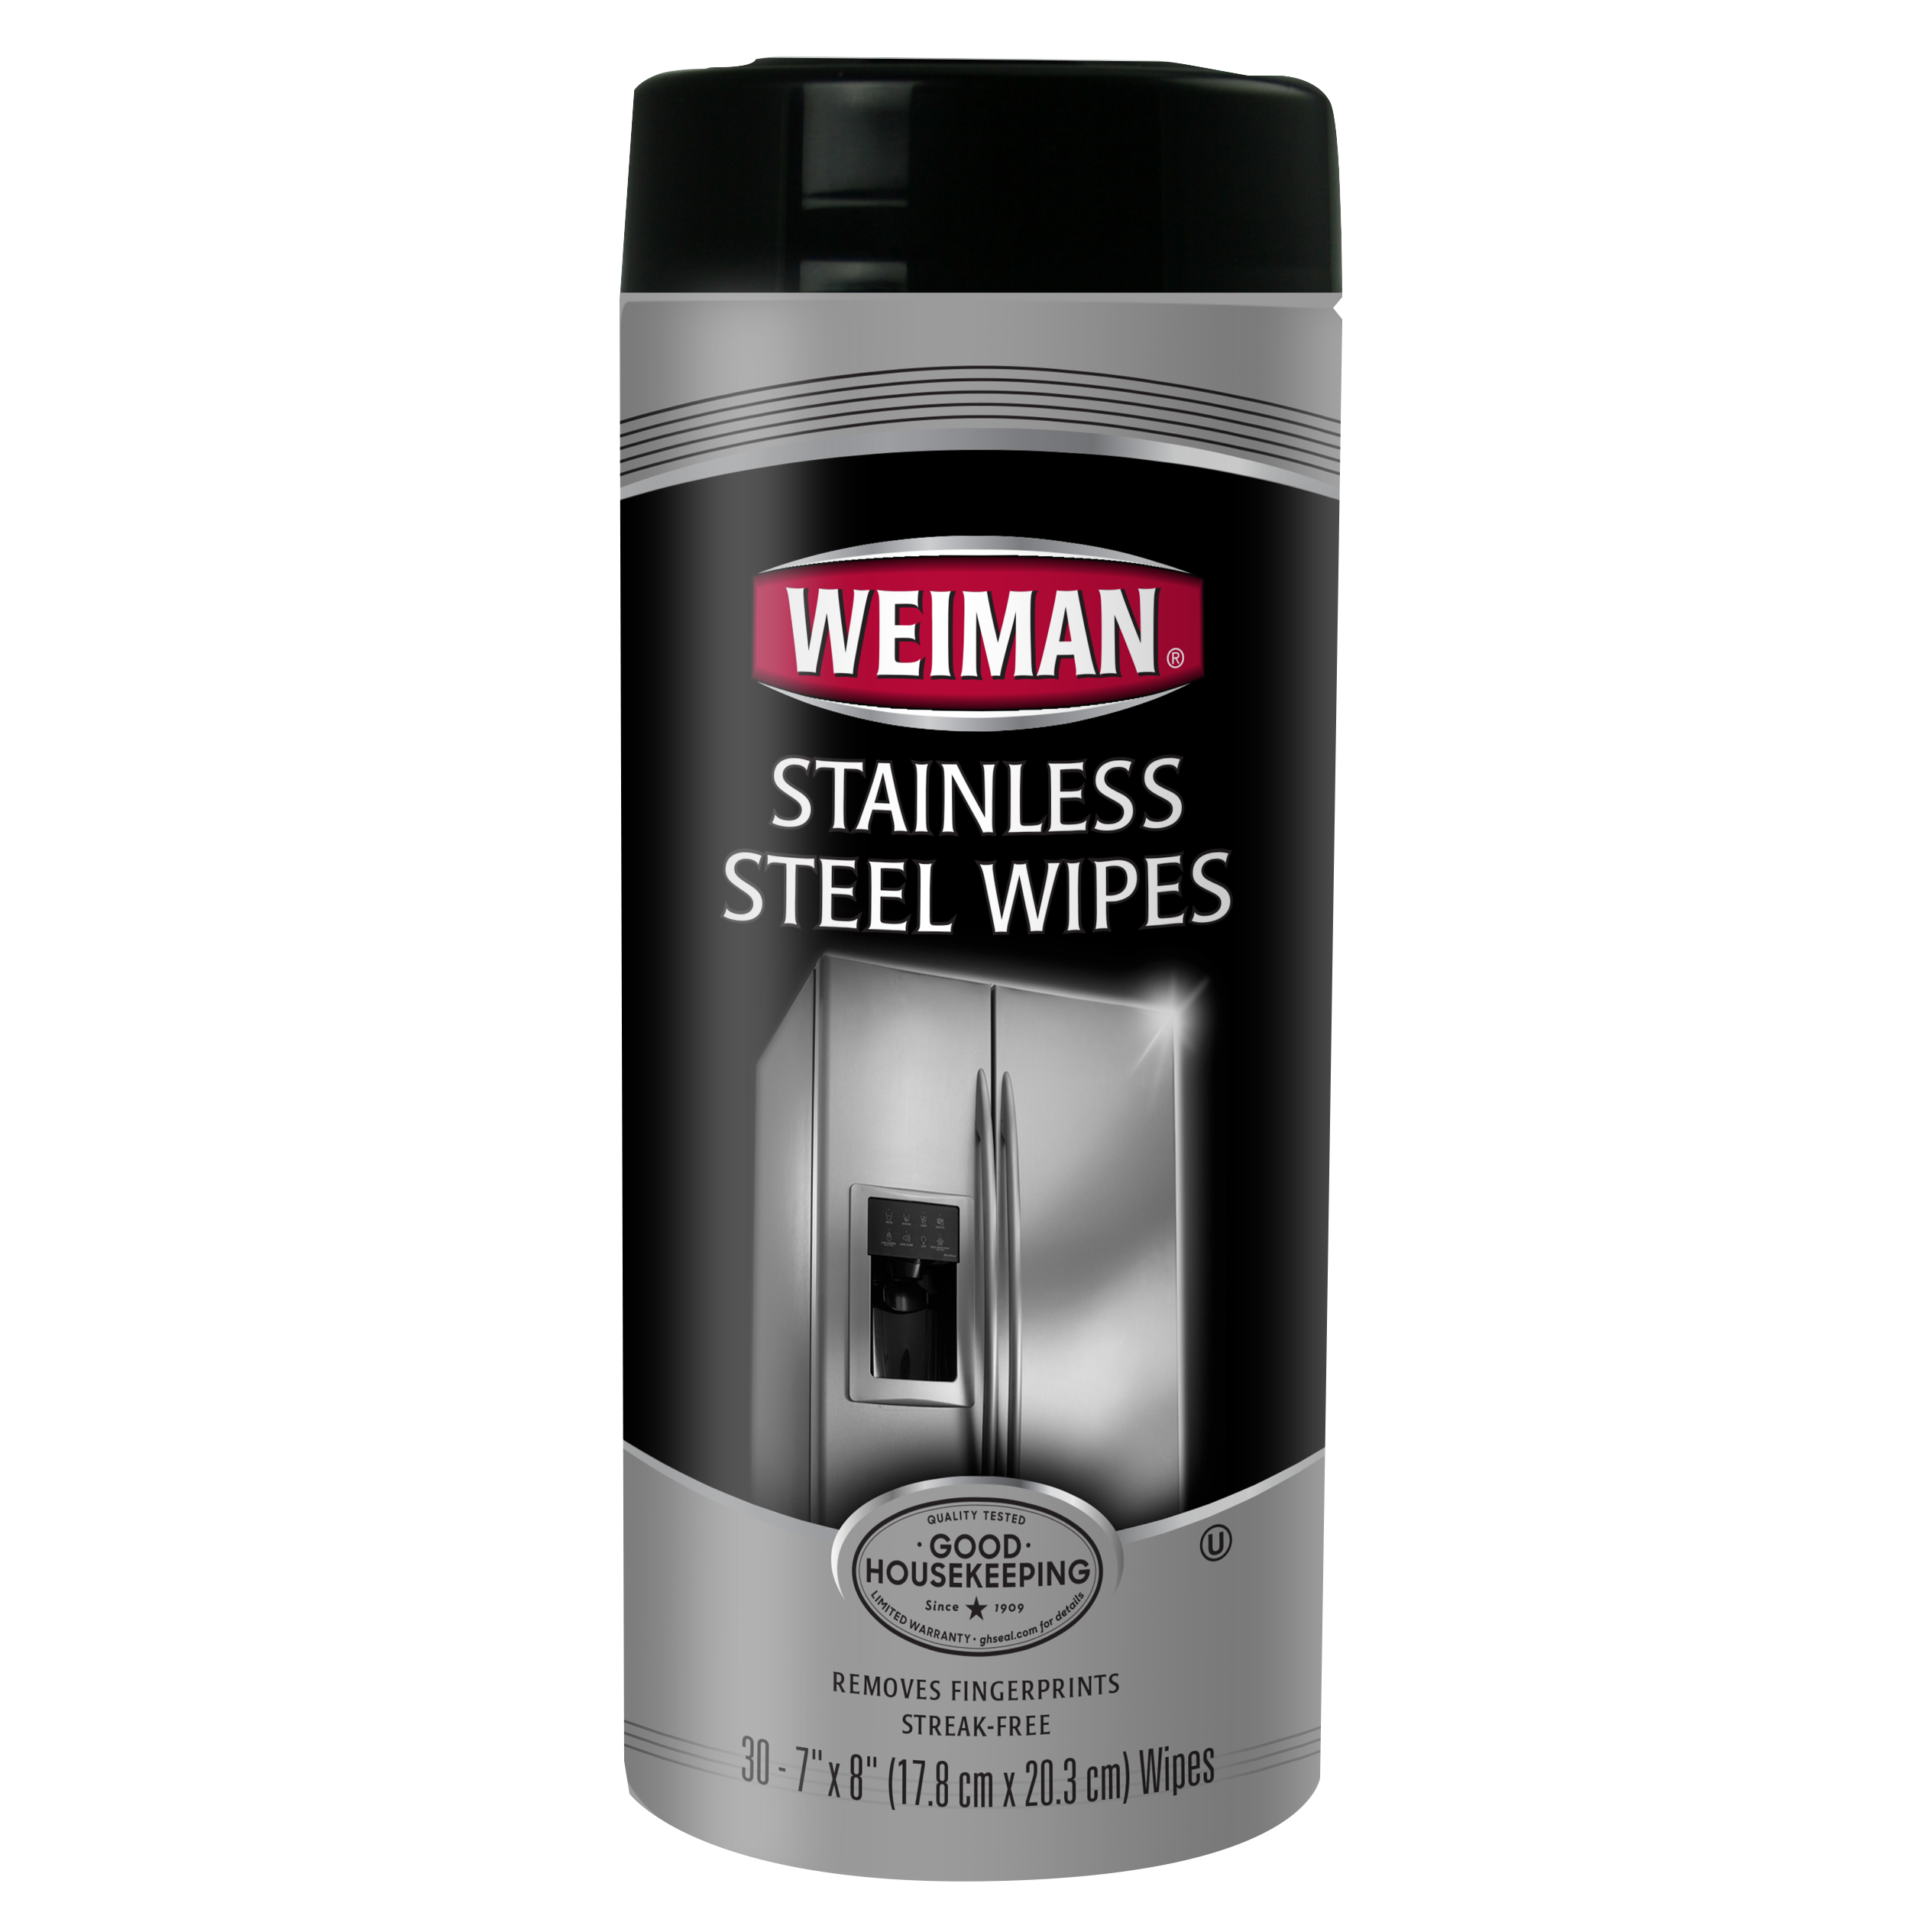 Weiman Stainless Steel Wipes, 30ct